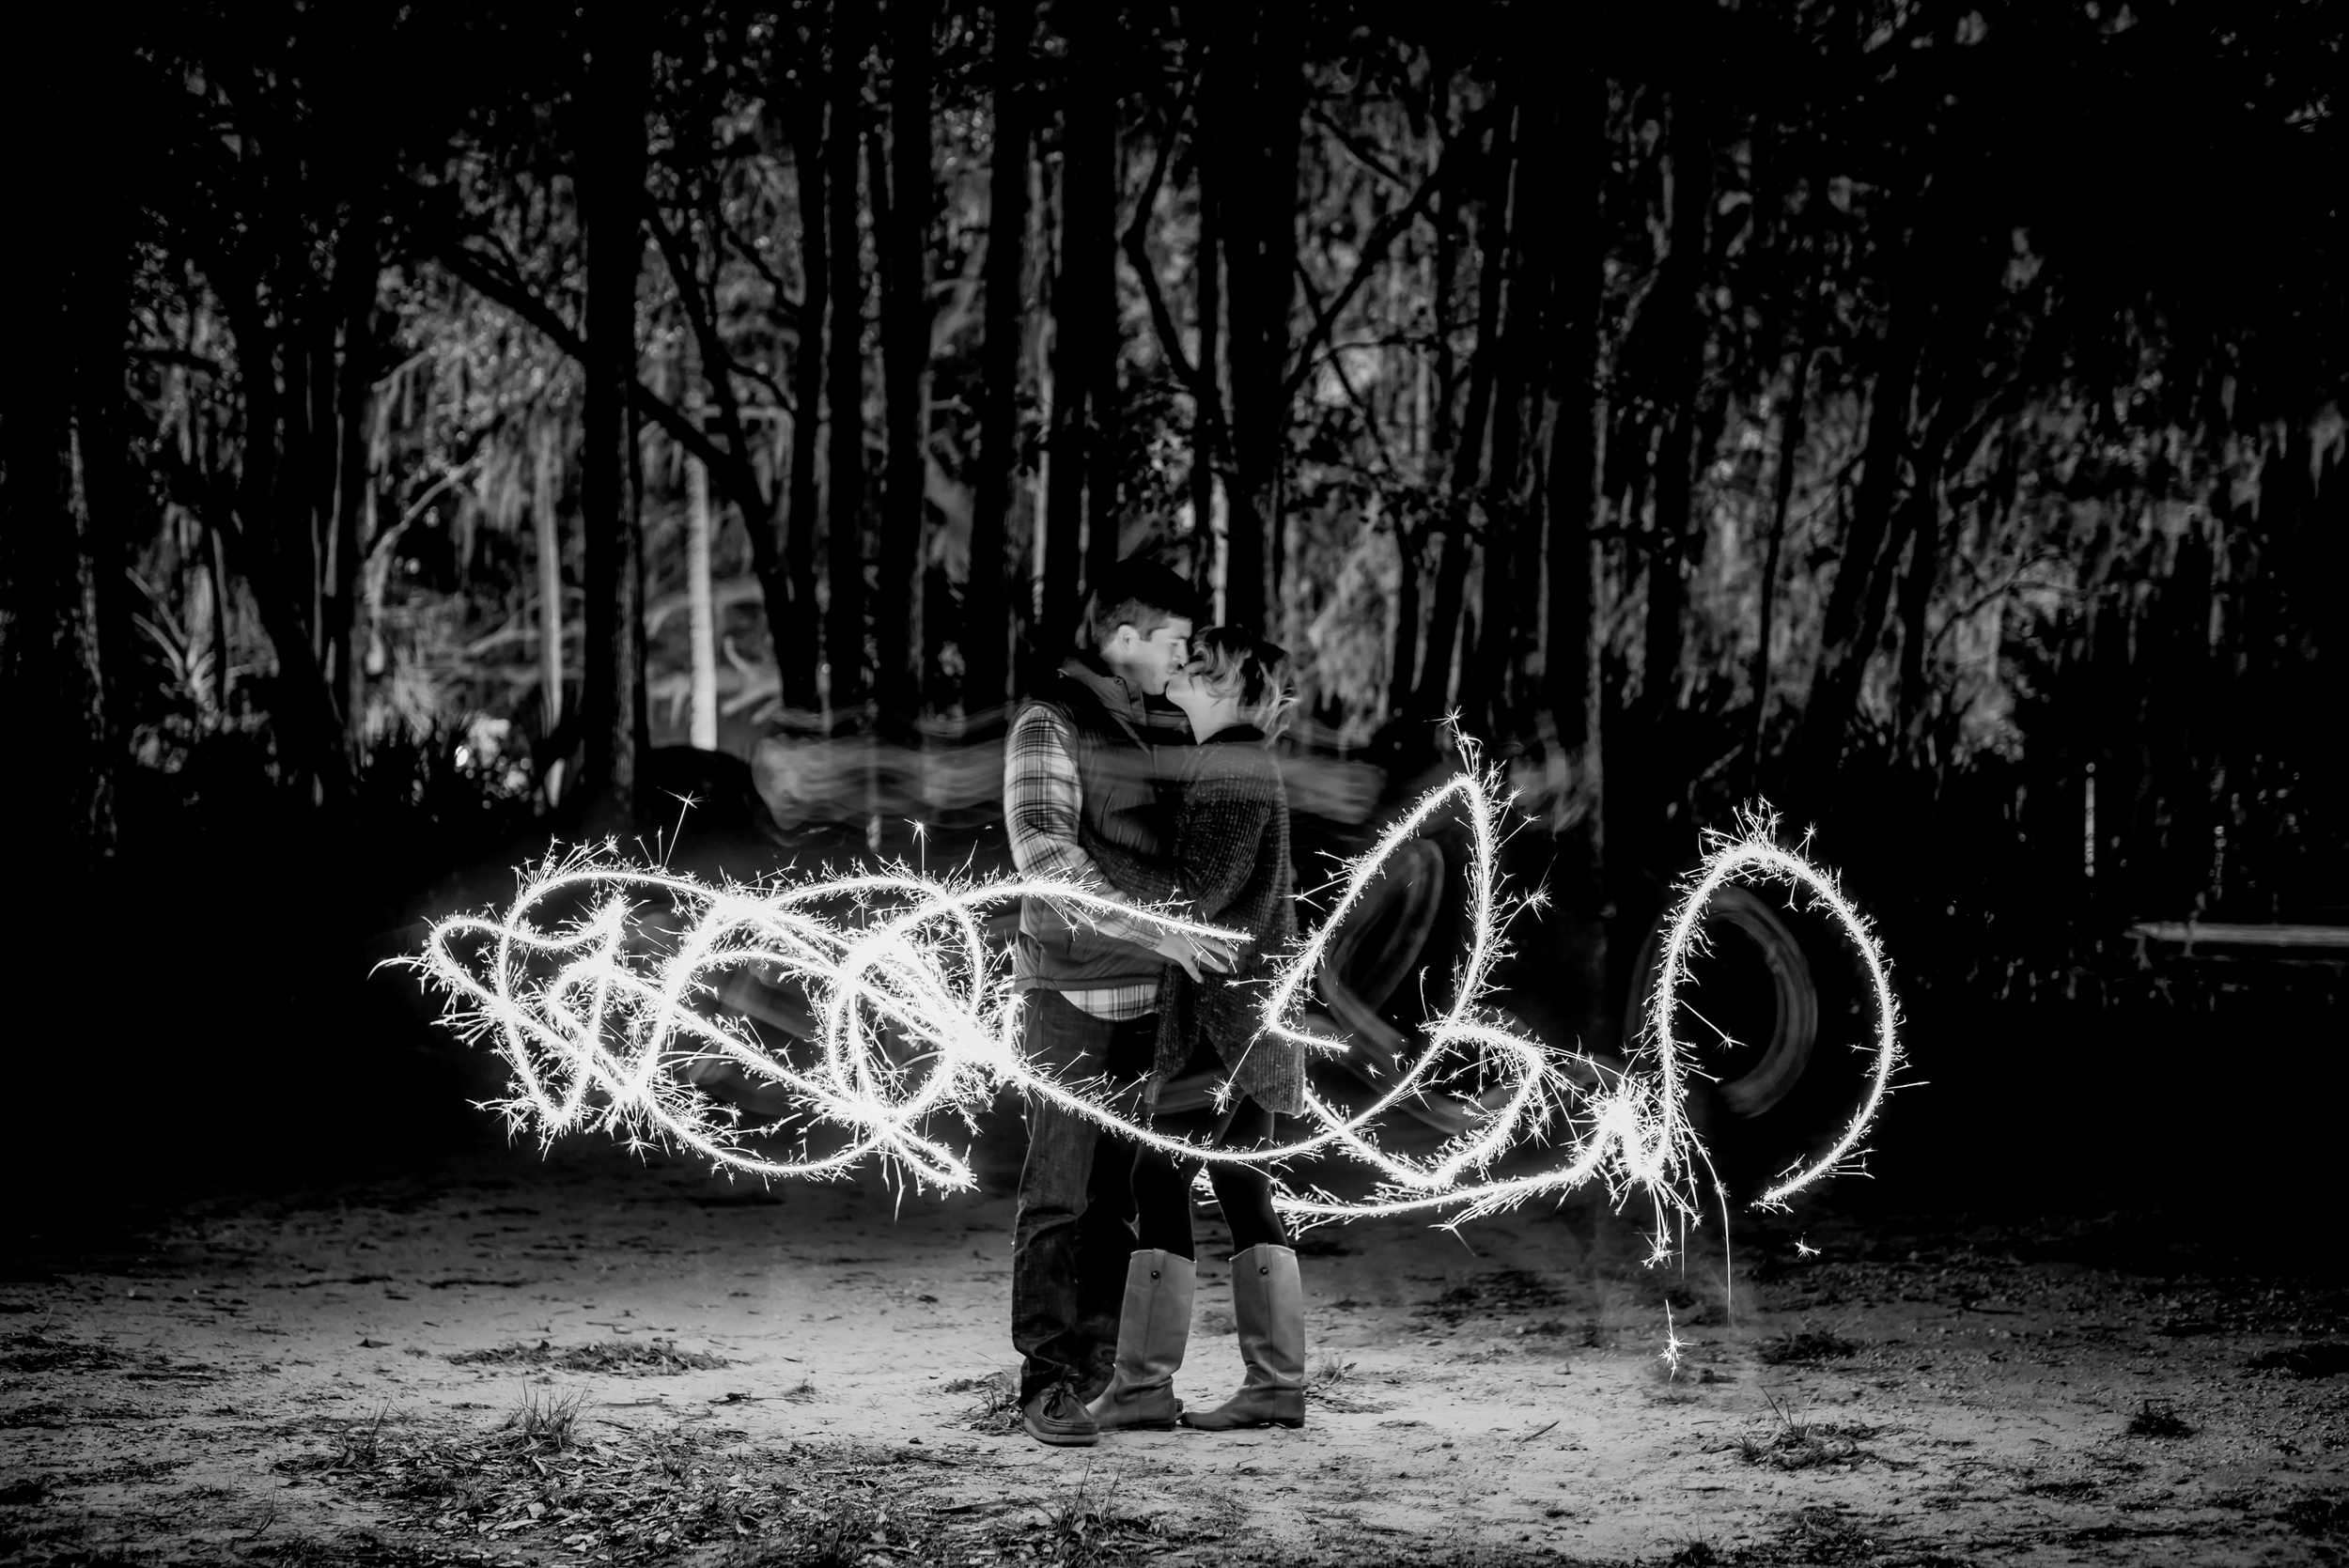 tampa-engagement-photographer-kelly-springs-rock-kiss-romantic-nature-adventure-love-candid-vibrant-black-and-white-sparkler-light-trail-kiss